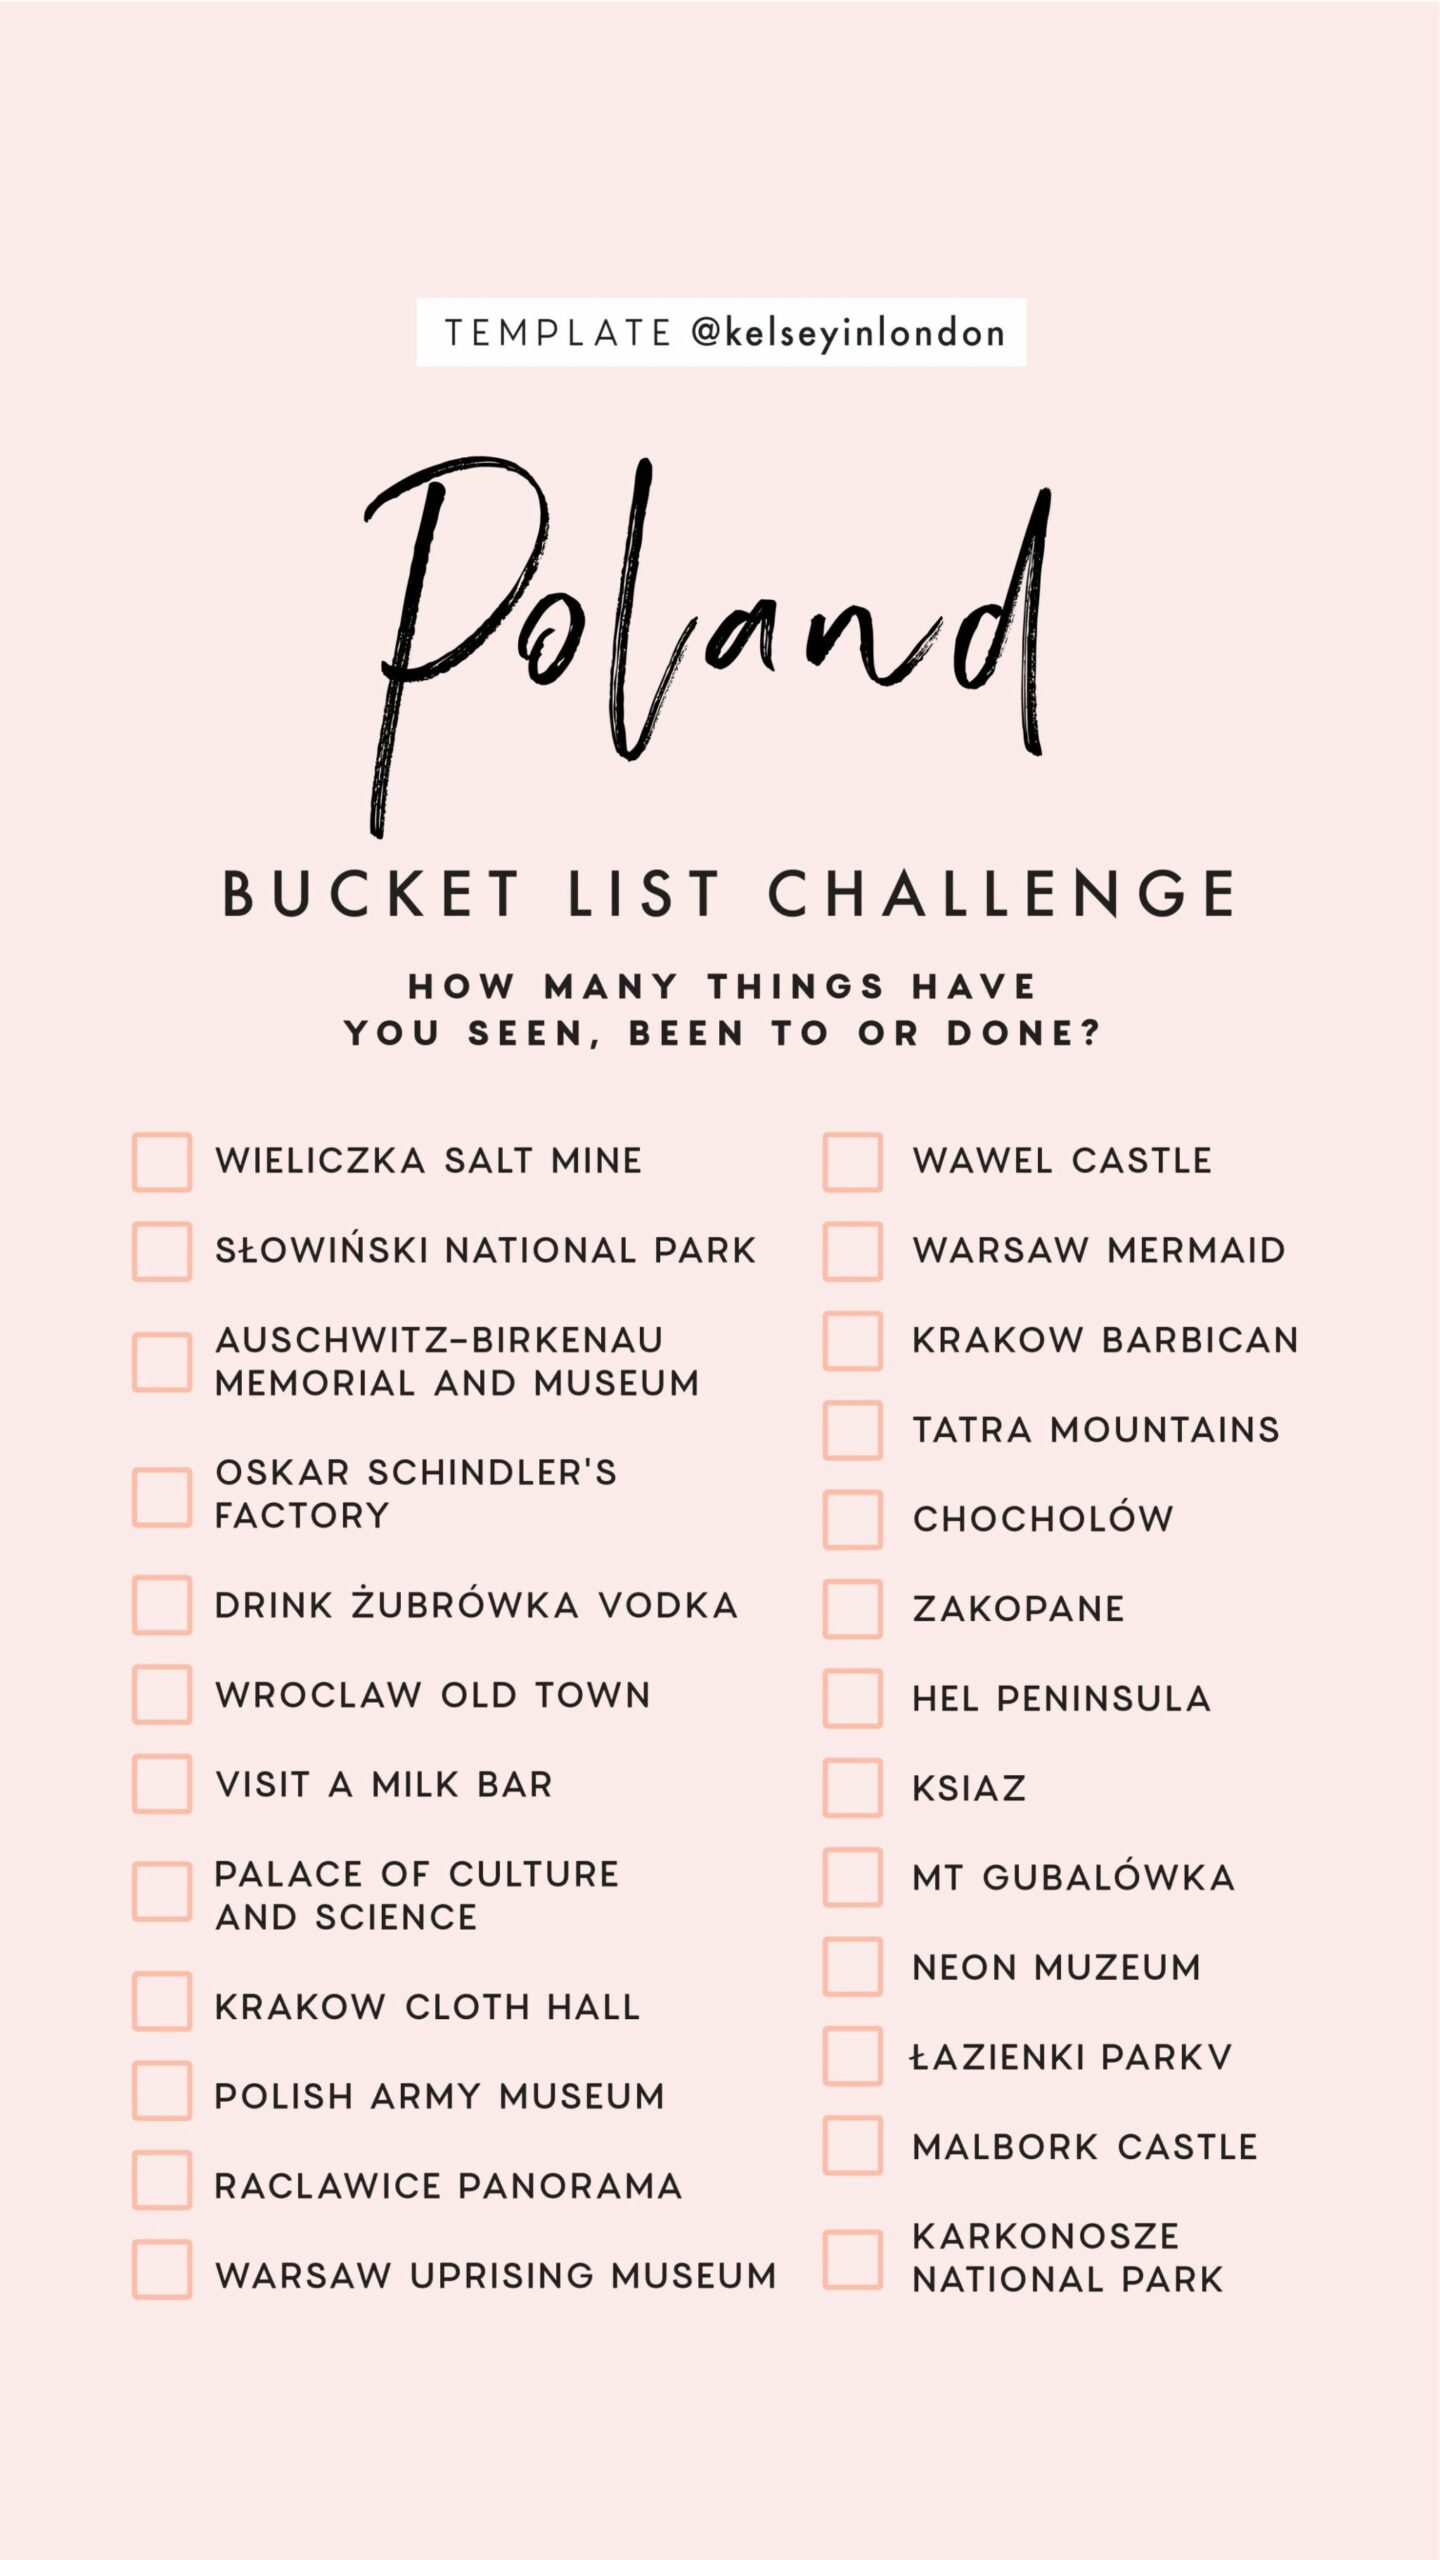 Top things to do in Poland Bucket list Instagram Story Template kelseyinlondon Kelsey Heinrichs What to do in Poland Where to go in Poland top places in Poland